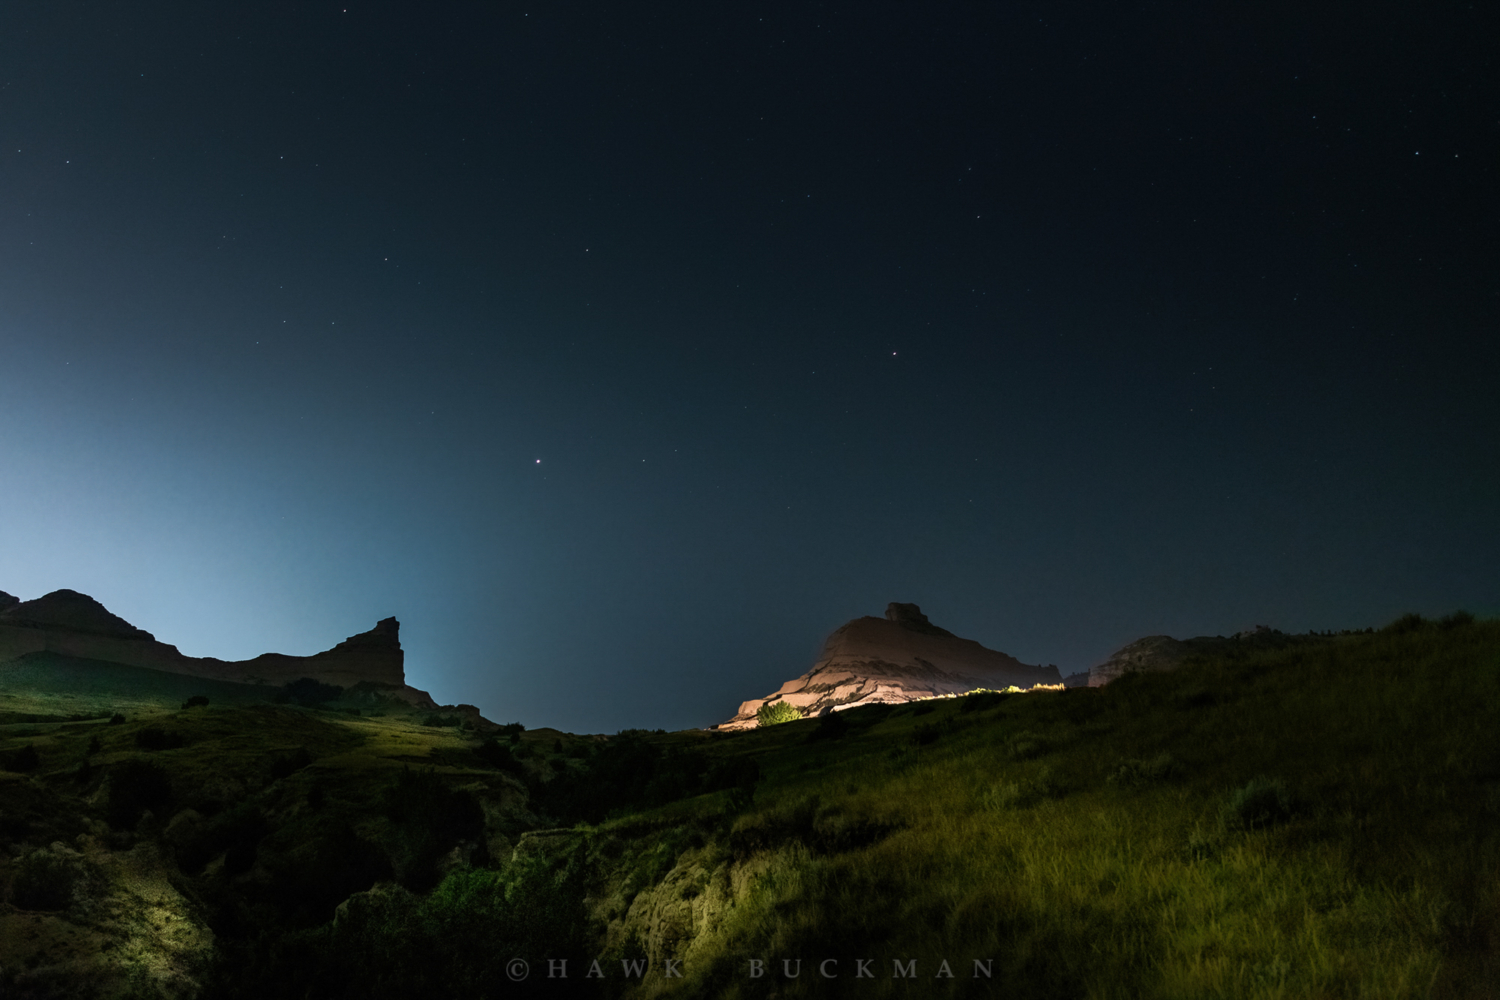 Eagle and Independence Rock Night Sky - Scotts Bluff National Monument